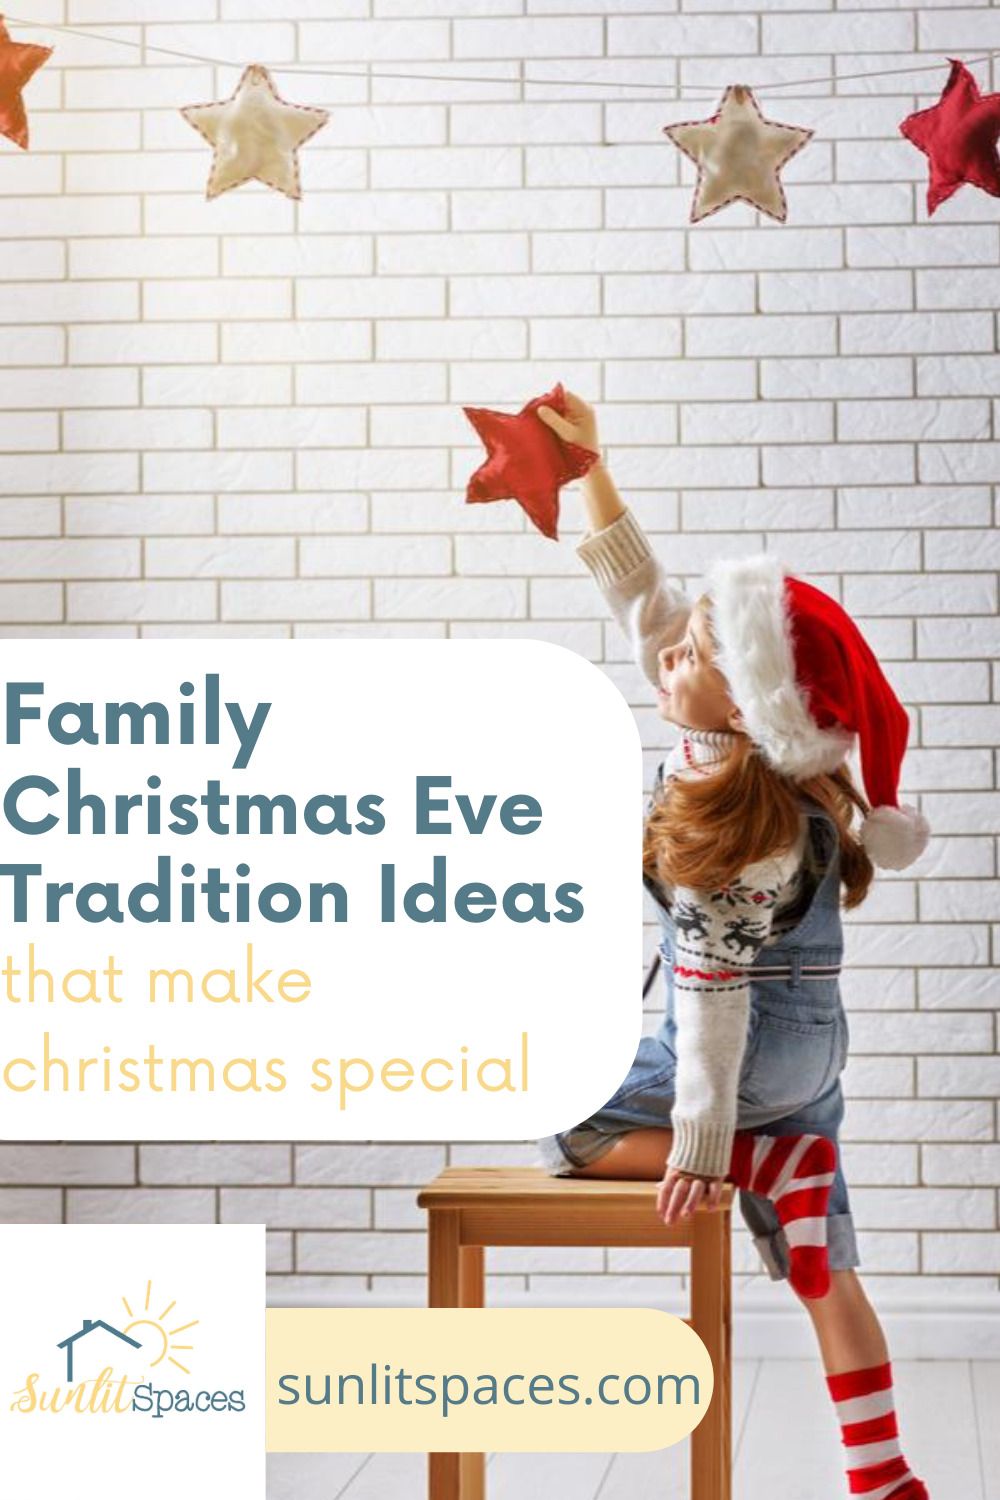 Special Christmas Eve tradition ideas to help you start your own Christmas family traditions. Blending traditions from two different families can be tricky, but you can always start your own! Here are some ideas to help. #sunlitspacesblog #christmasevetraditionideas #christmastraditions #christmasideas